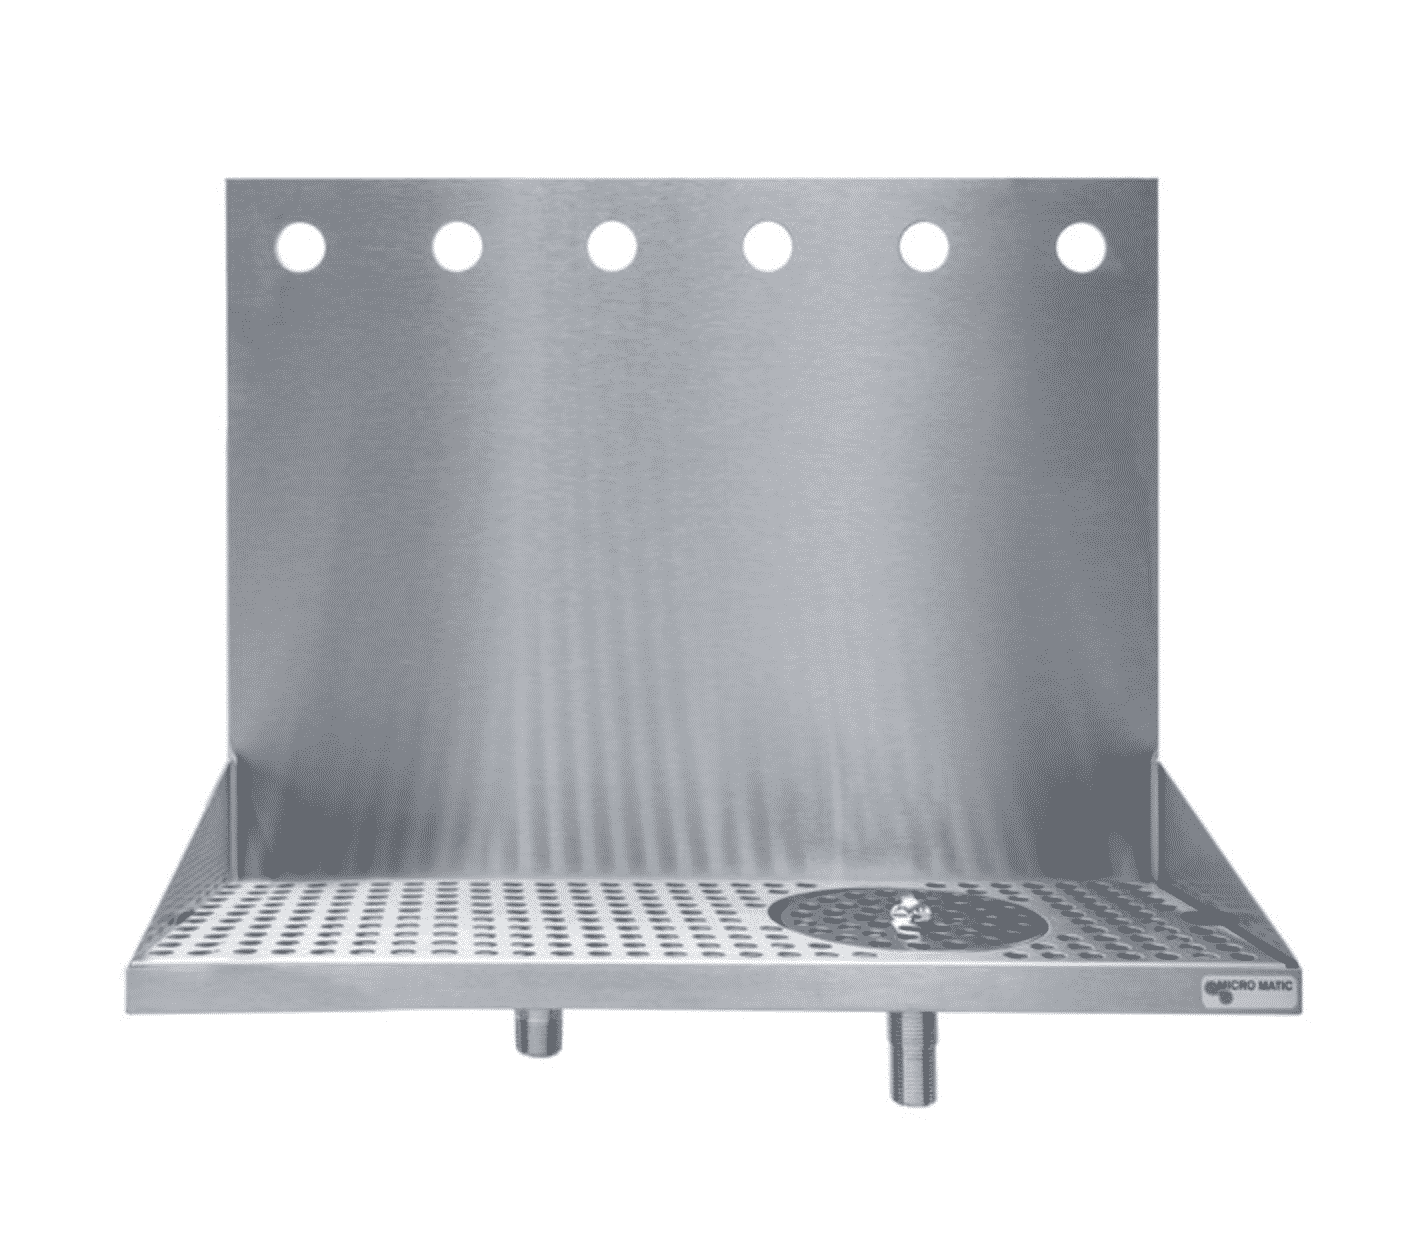 6 Faucet Stainless Steel Wall Mount Drip Tray with Glass Rinser